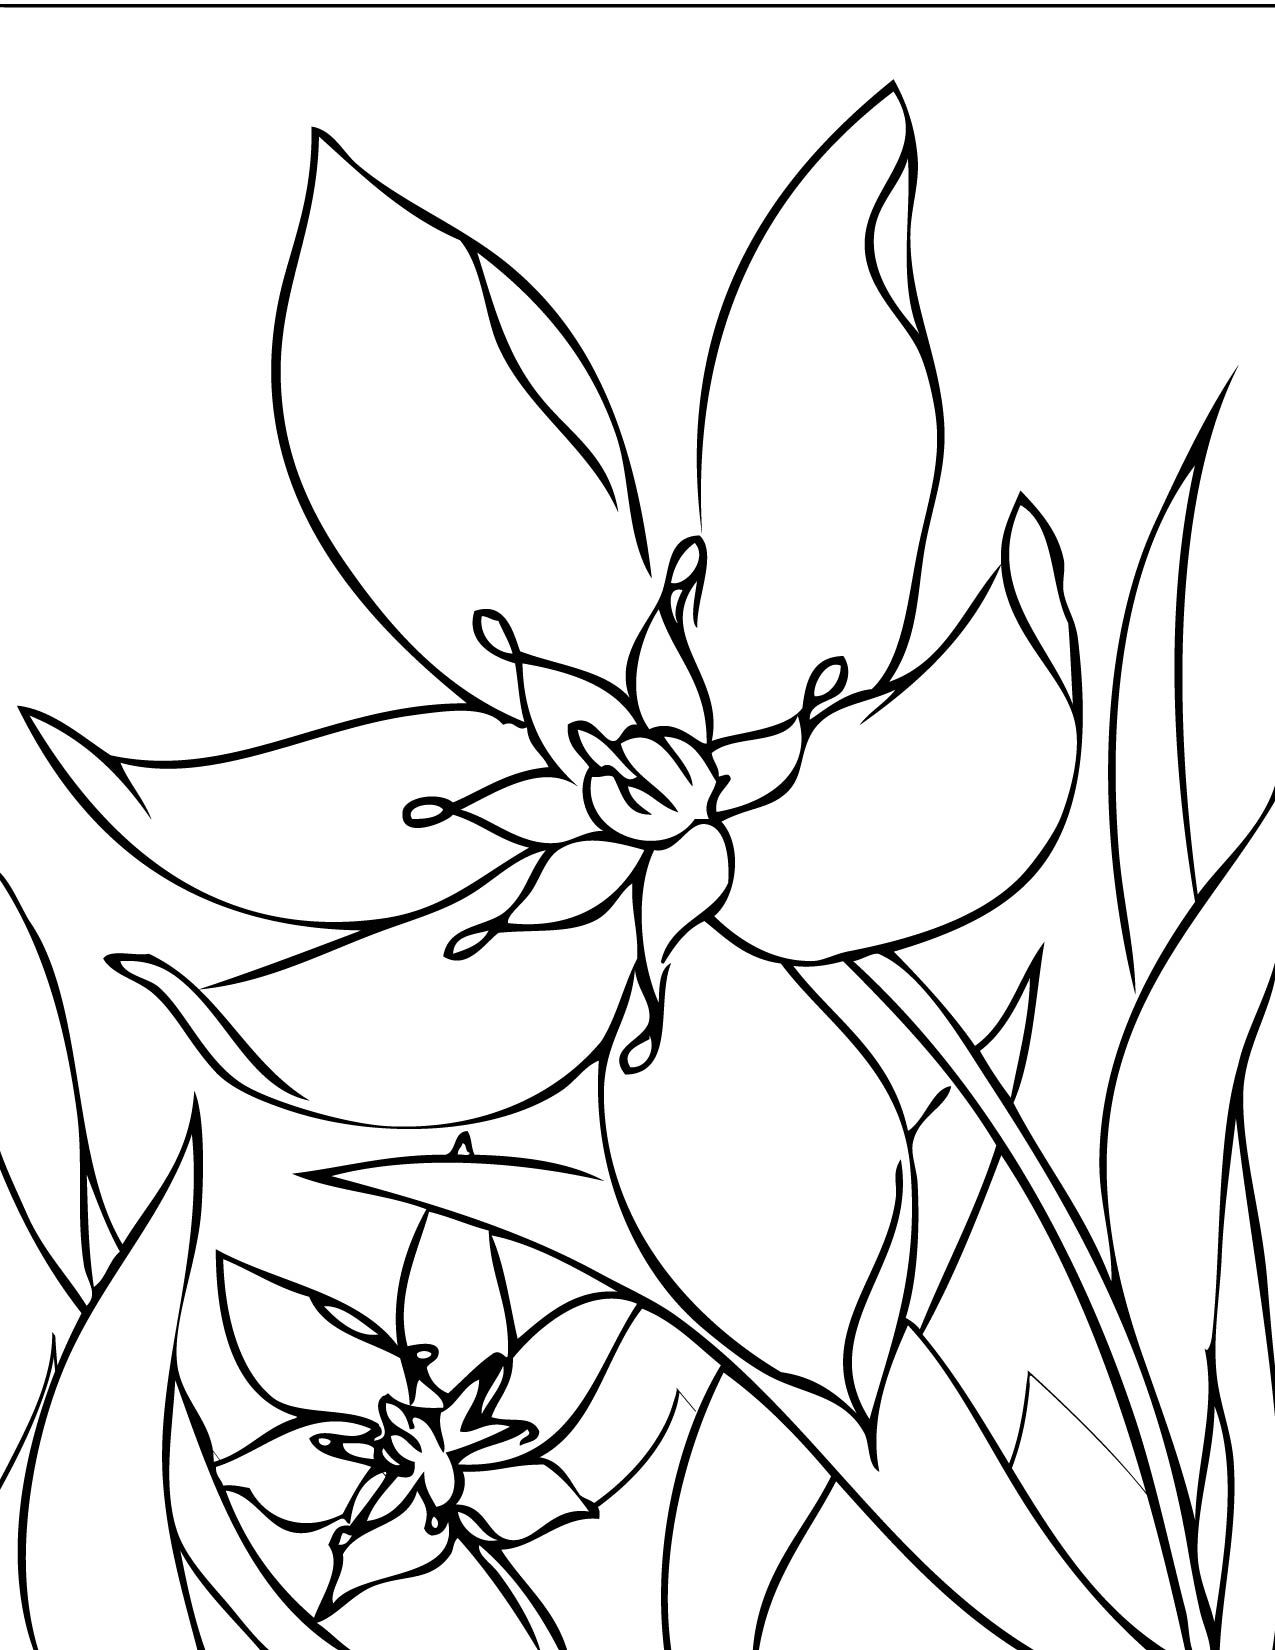 Spring coloring pages for adults free - Flower Page Printable Coloring Sheets Print This Page Spring Flowers Coloring Pages Coloring